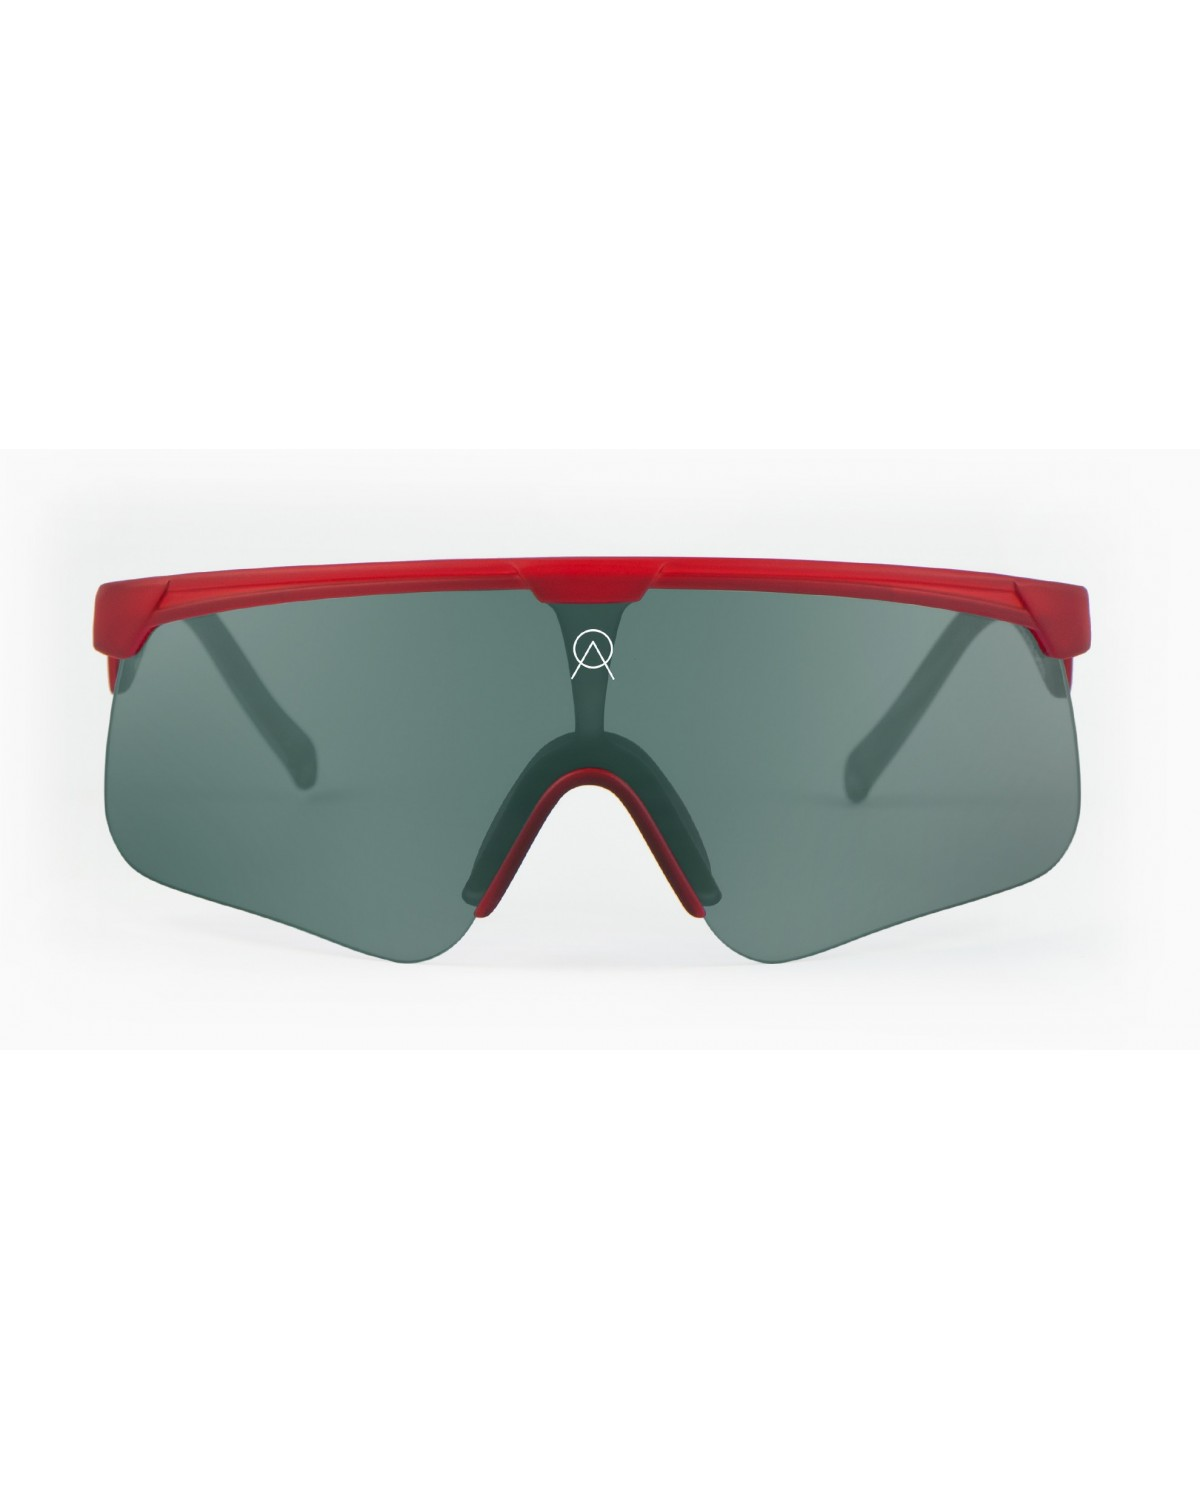 Alba Optics Delta Poppy Red Sonnenbrille